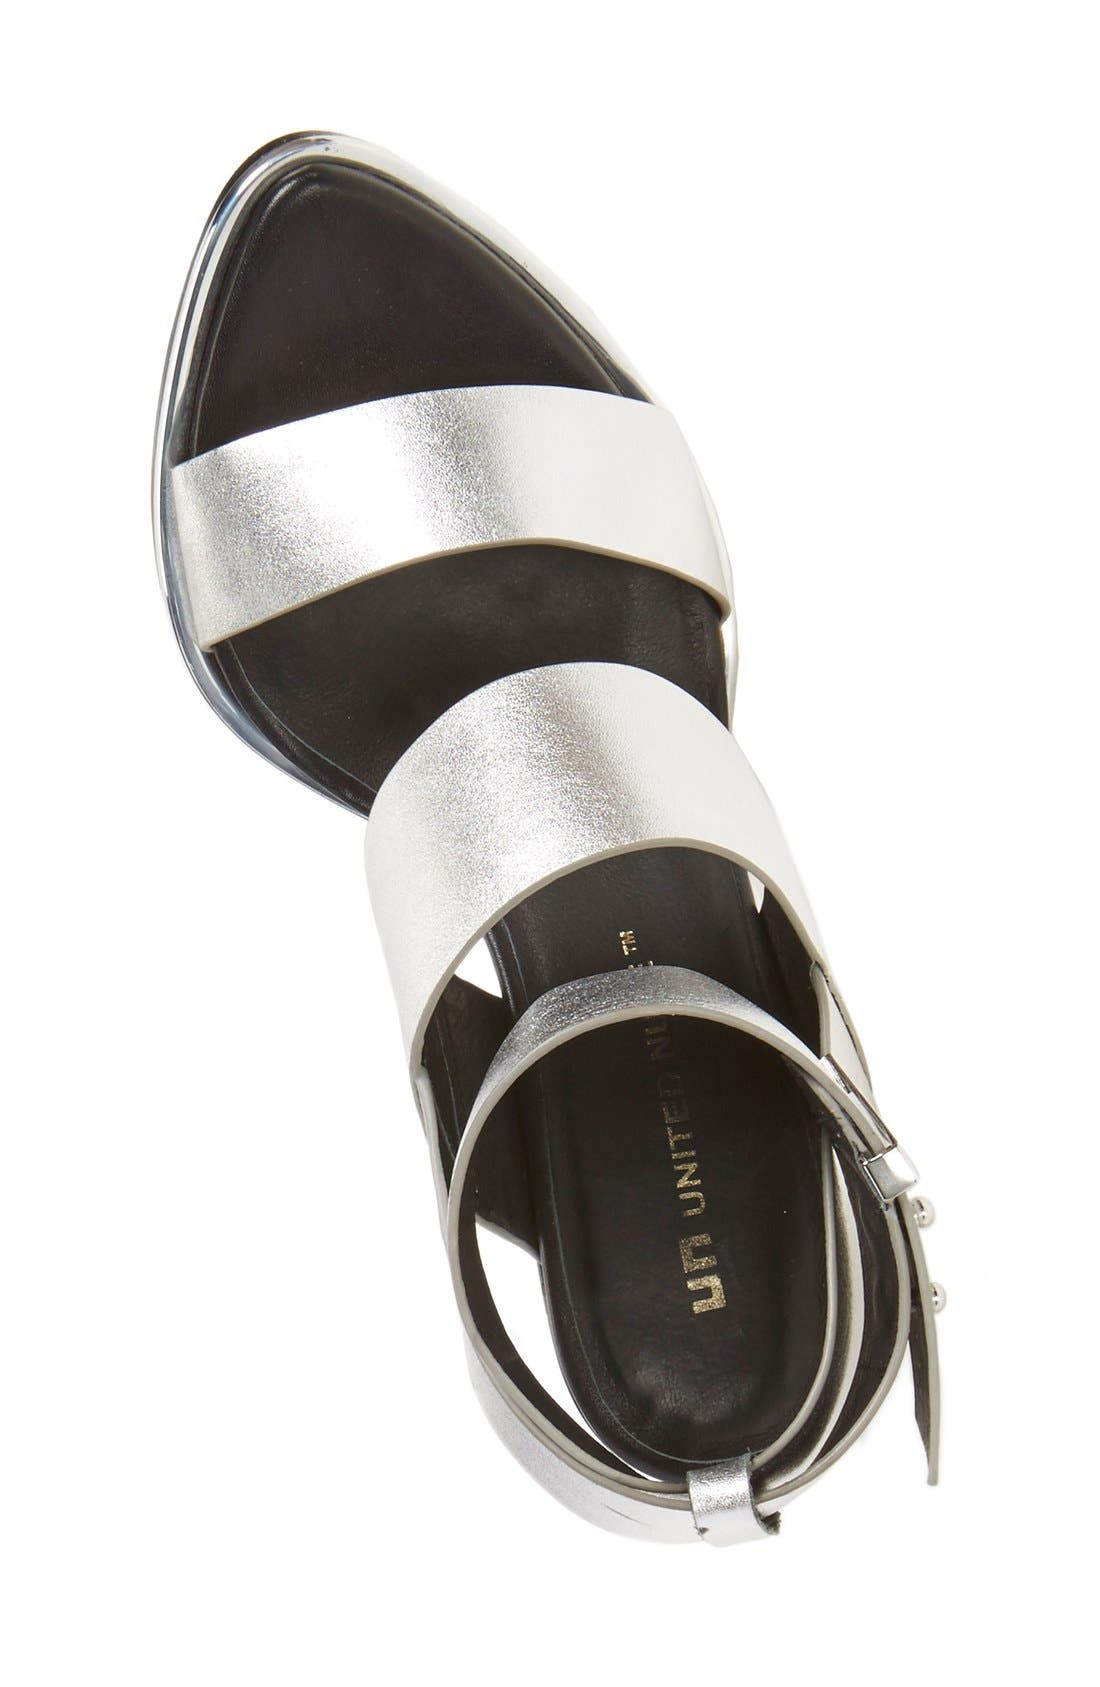 UNITED NUDE COLLECTION,                             'Leona Hi' Ankle Strap Sandal,                             Alternate thumbnail 4, color,                             040